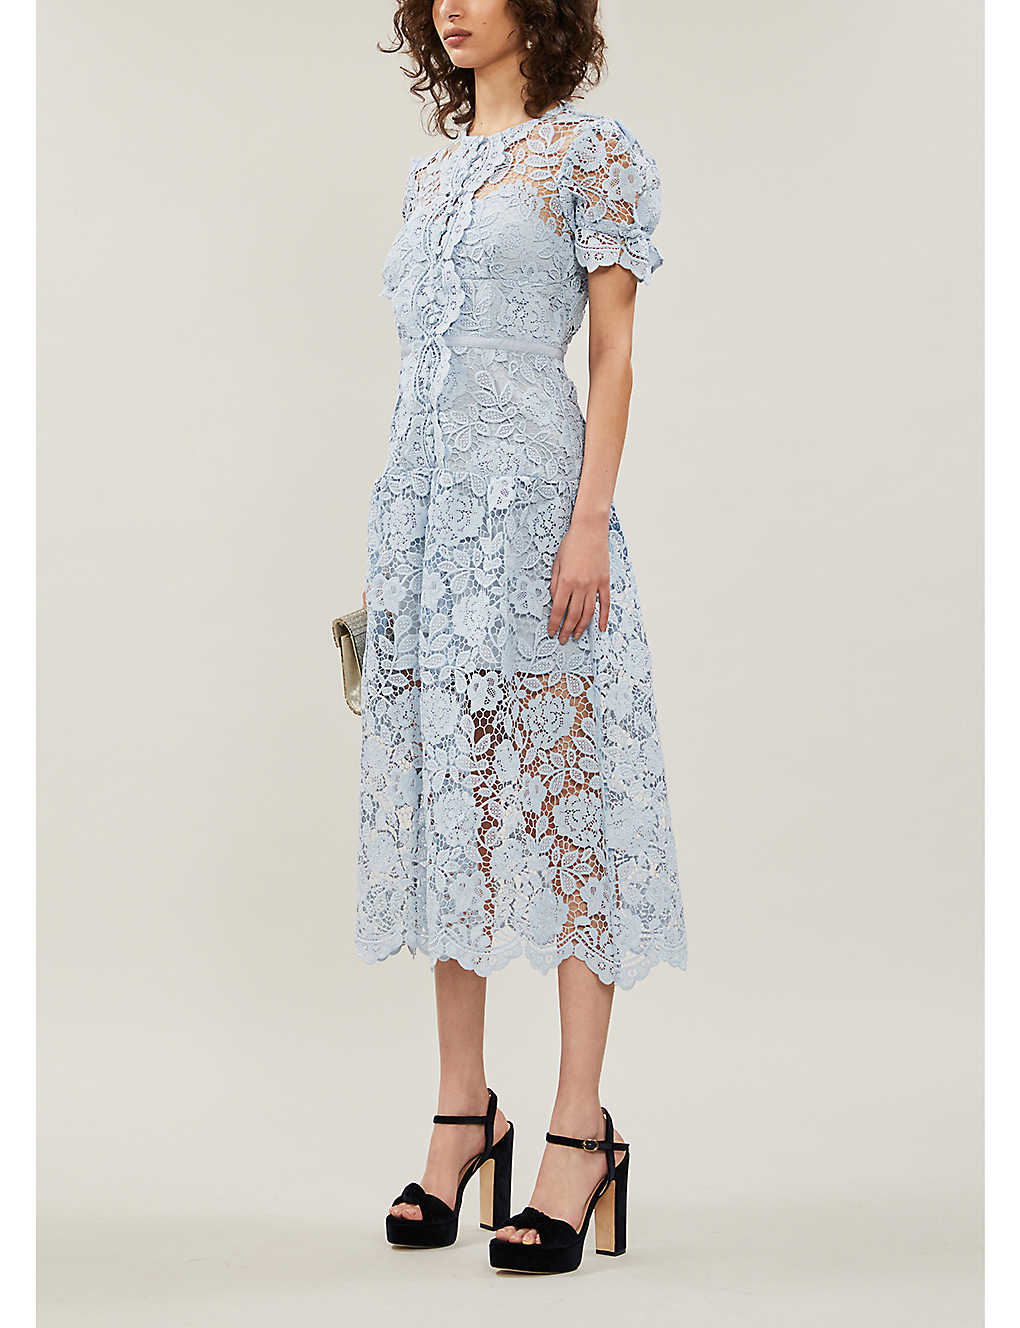 SELF-PORTRAIT Puff-sleeve Floral-lace Midi Dress